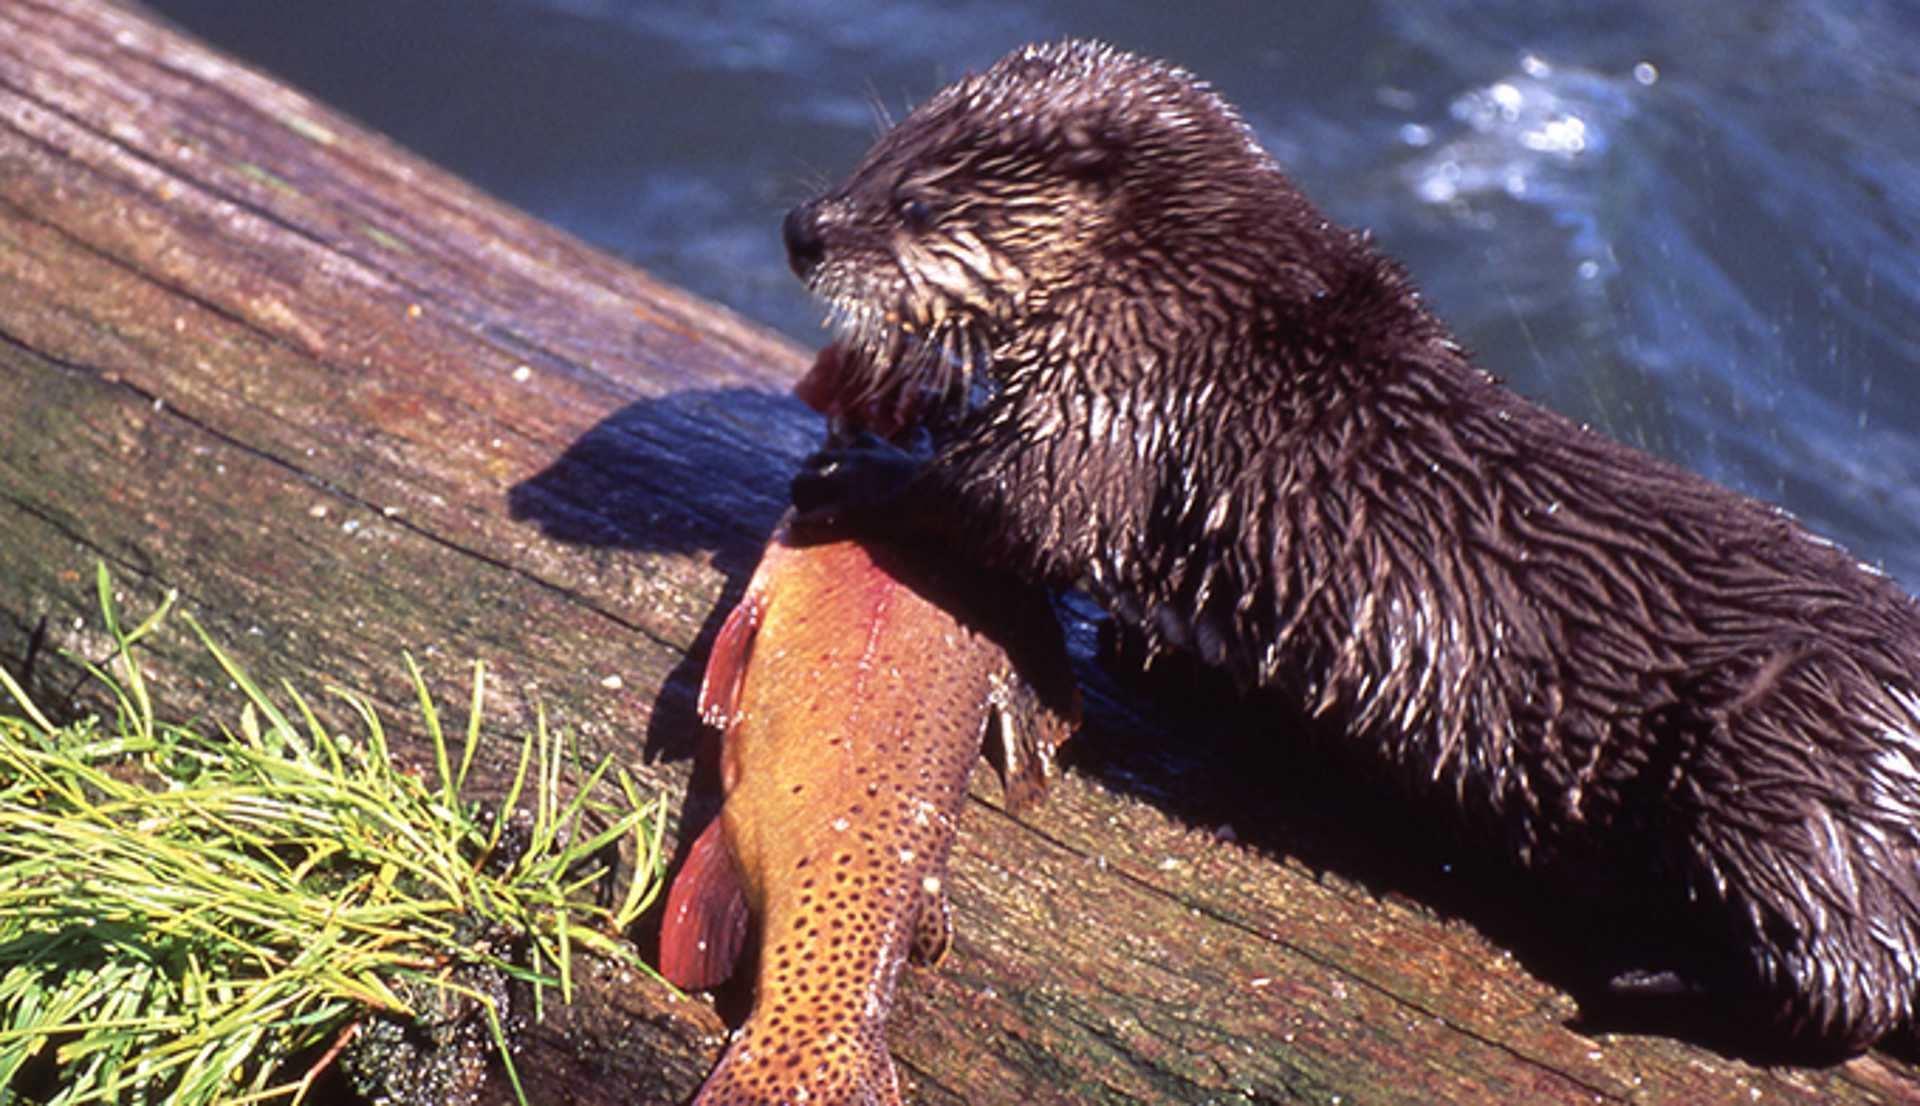 29-yellowstone-national-park-river-otters